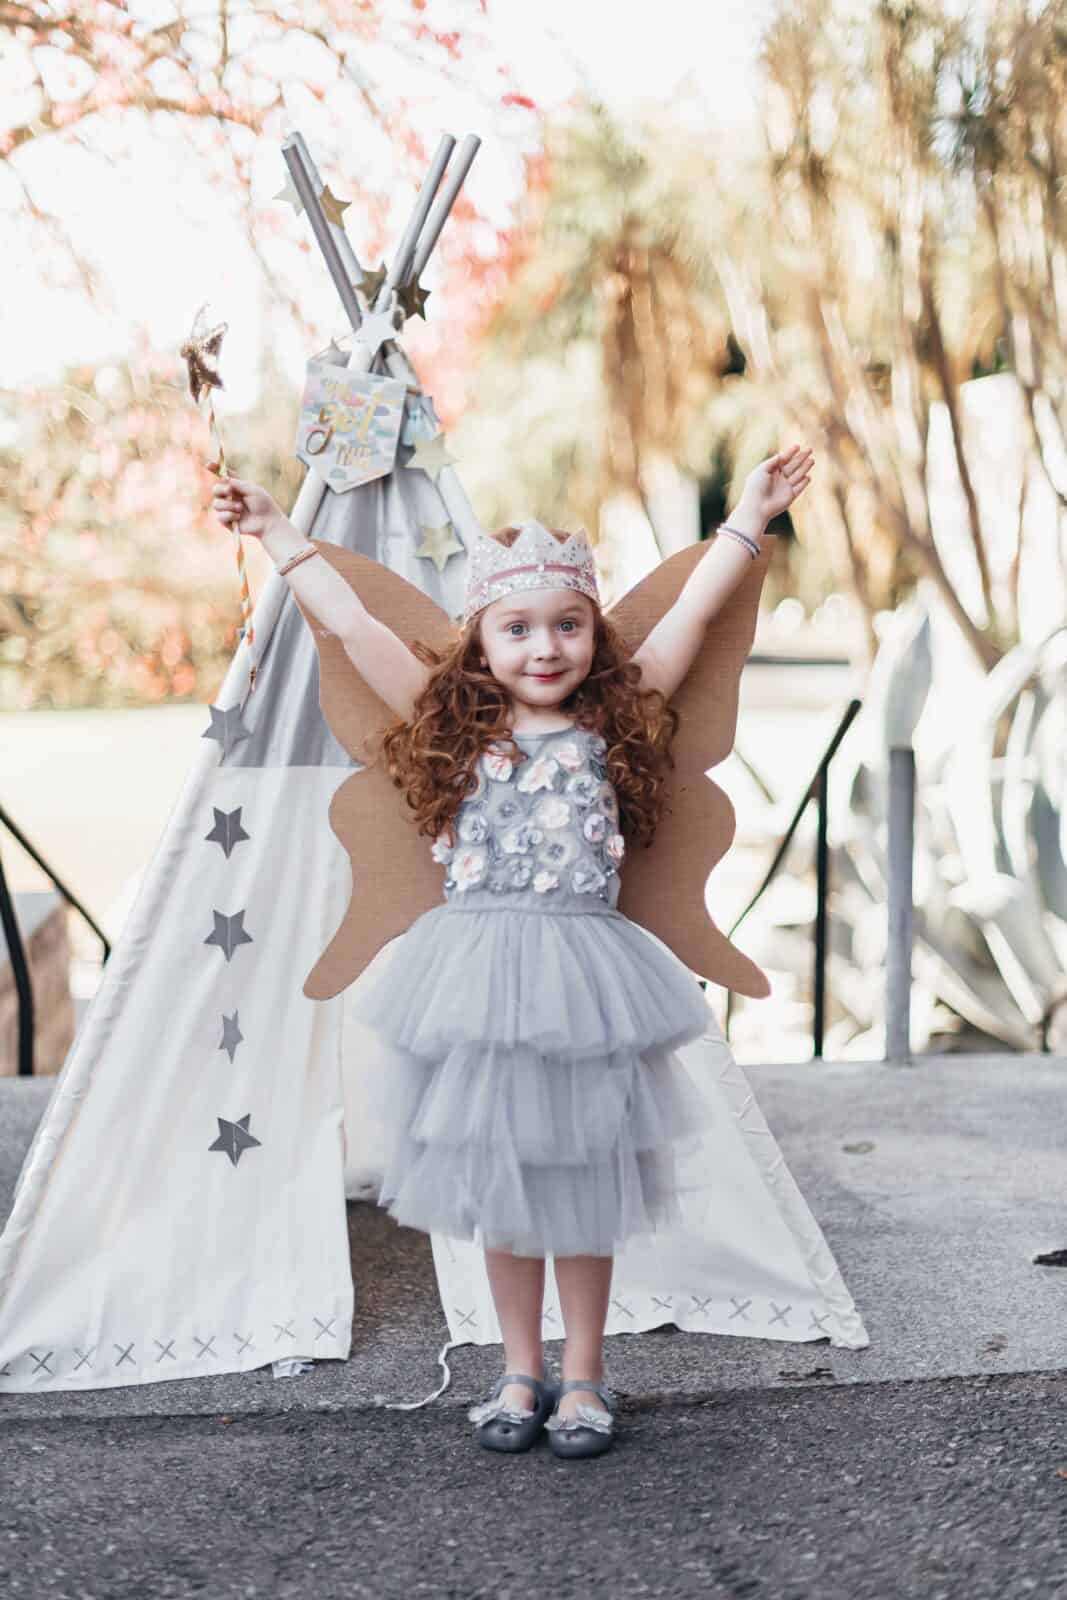 DIY Fairy Princess Costume Using Amazon Smile Boxes